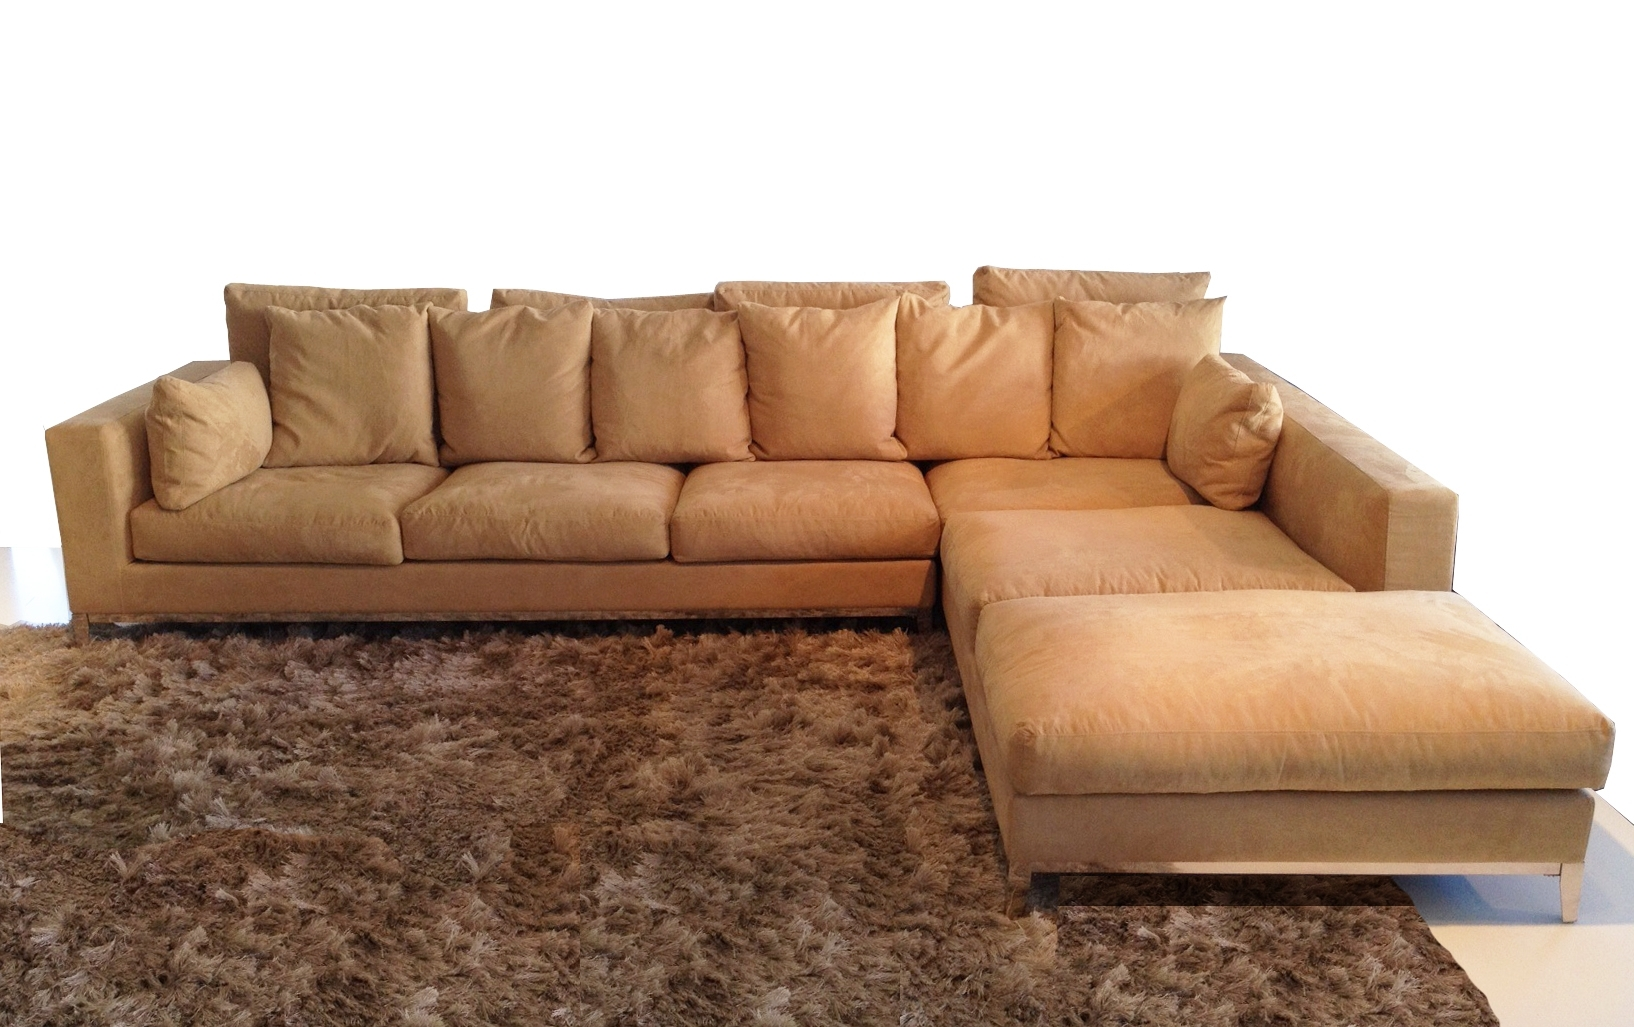 Long Chaise Sofas Regarding Most Up To Date Extra Large Sectional Sofas – Decofurnish (View 15 of 20)